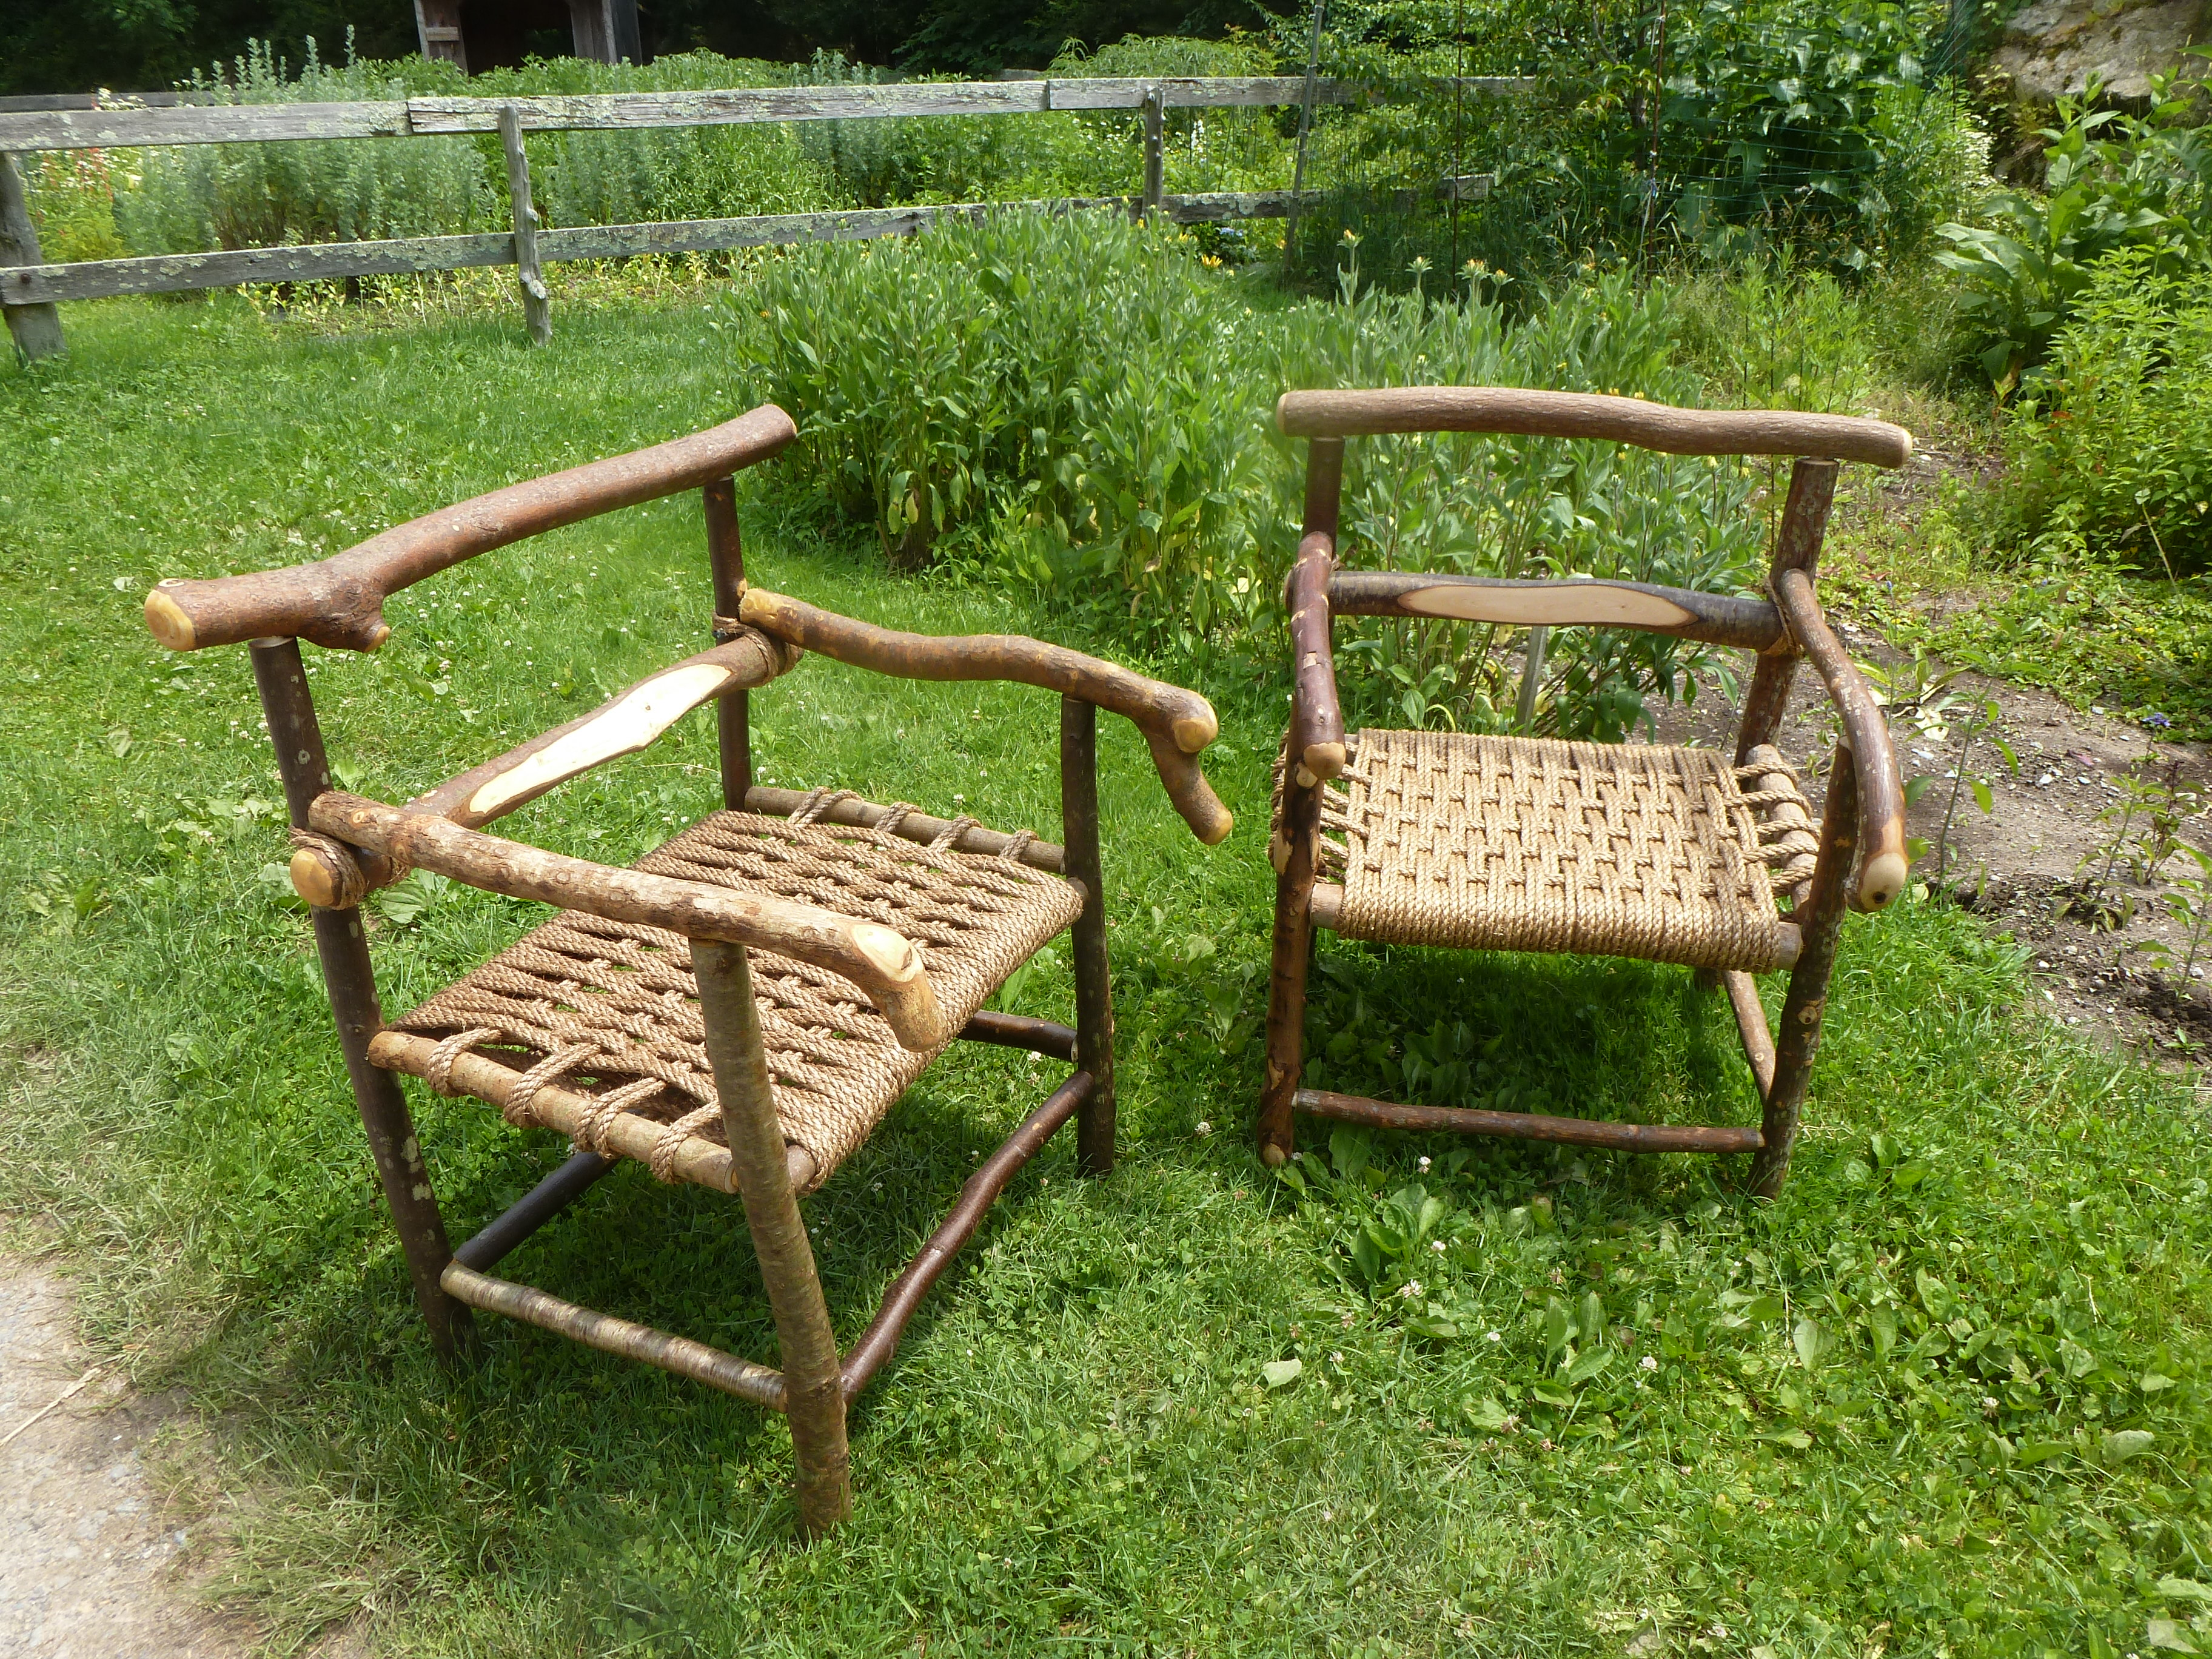 Holly Hill Rustic Furniture Malcolm Whites Rustic Furniture Website